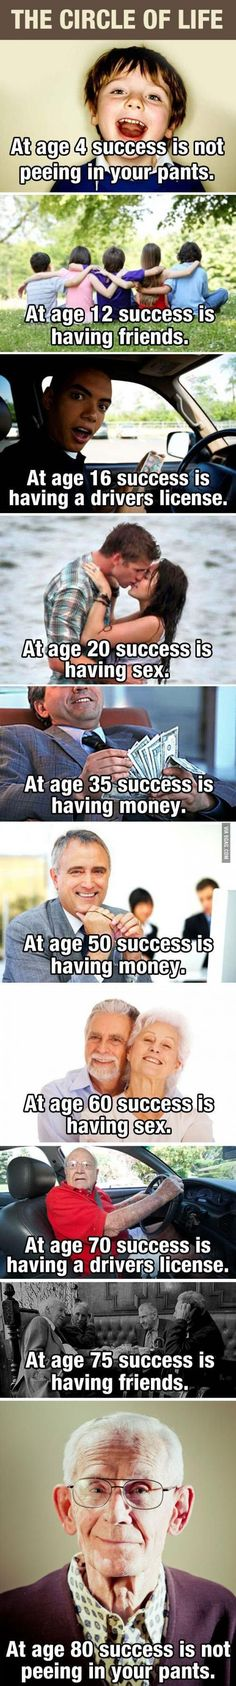 Circle of Life and Success